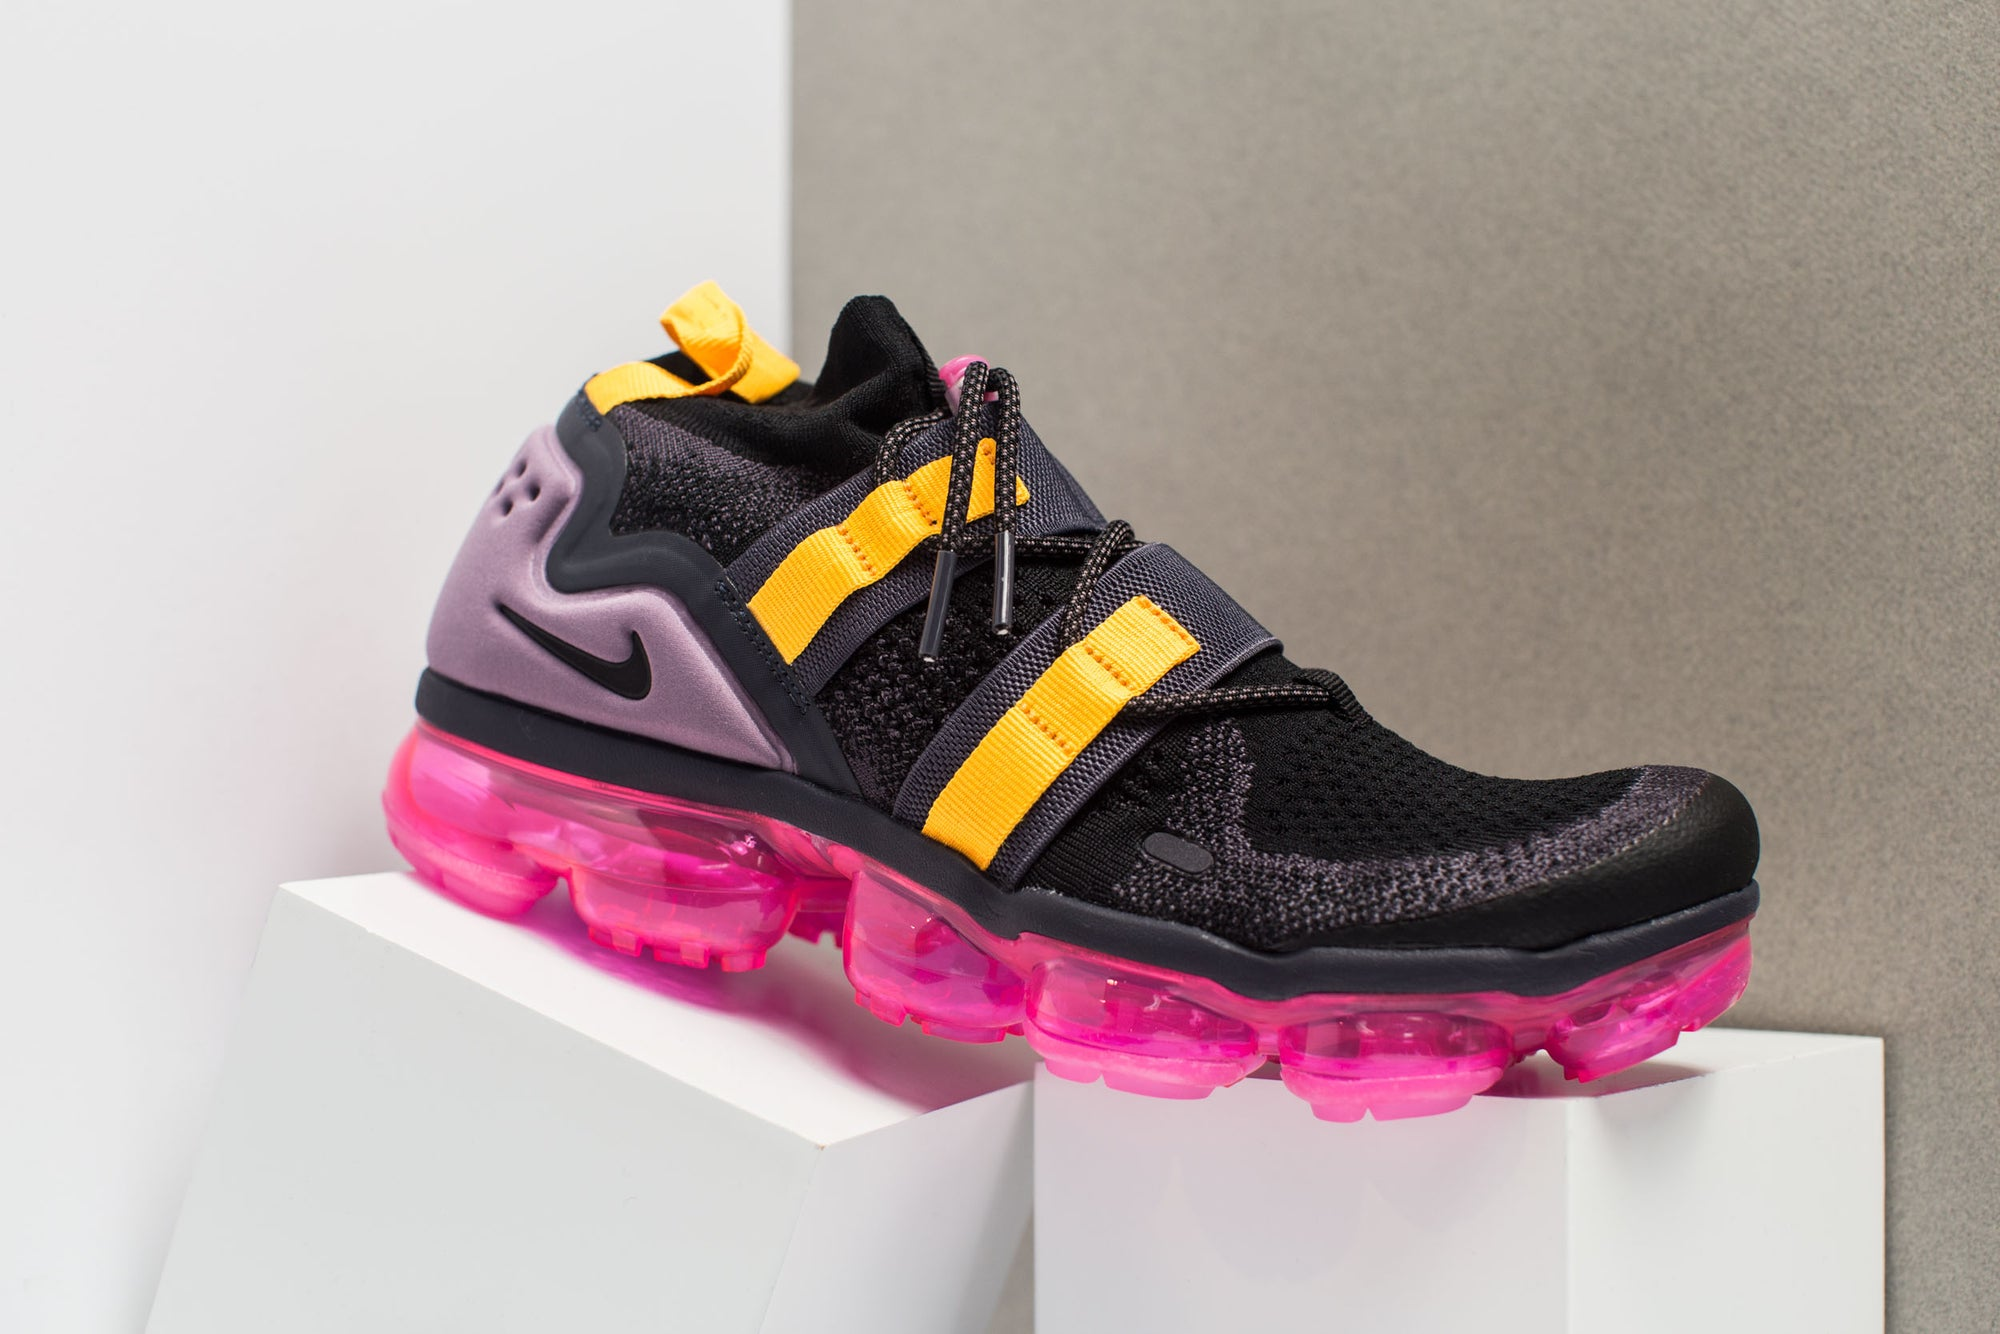 6bbd1315db6f1 NIKE AIR VAPORMAX FK UTILITY - Oneness Boutique